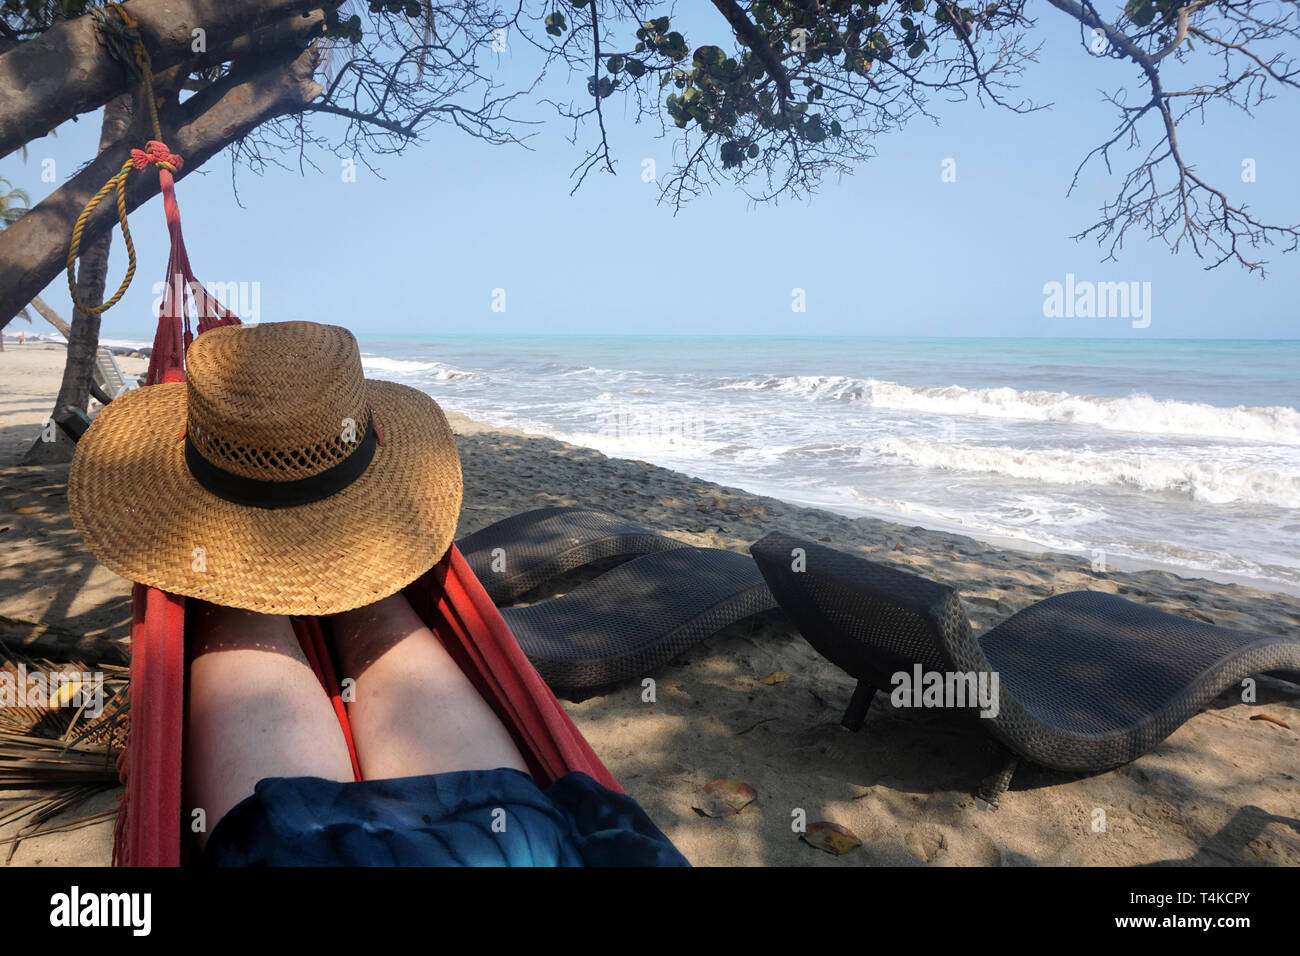 Sun Hat on the Feet of a Woman Relaxing in a Hammock with Ocean Views - Stock Image